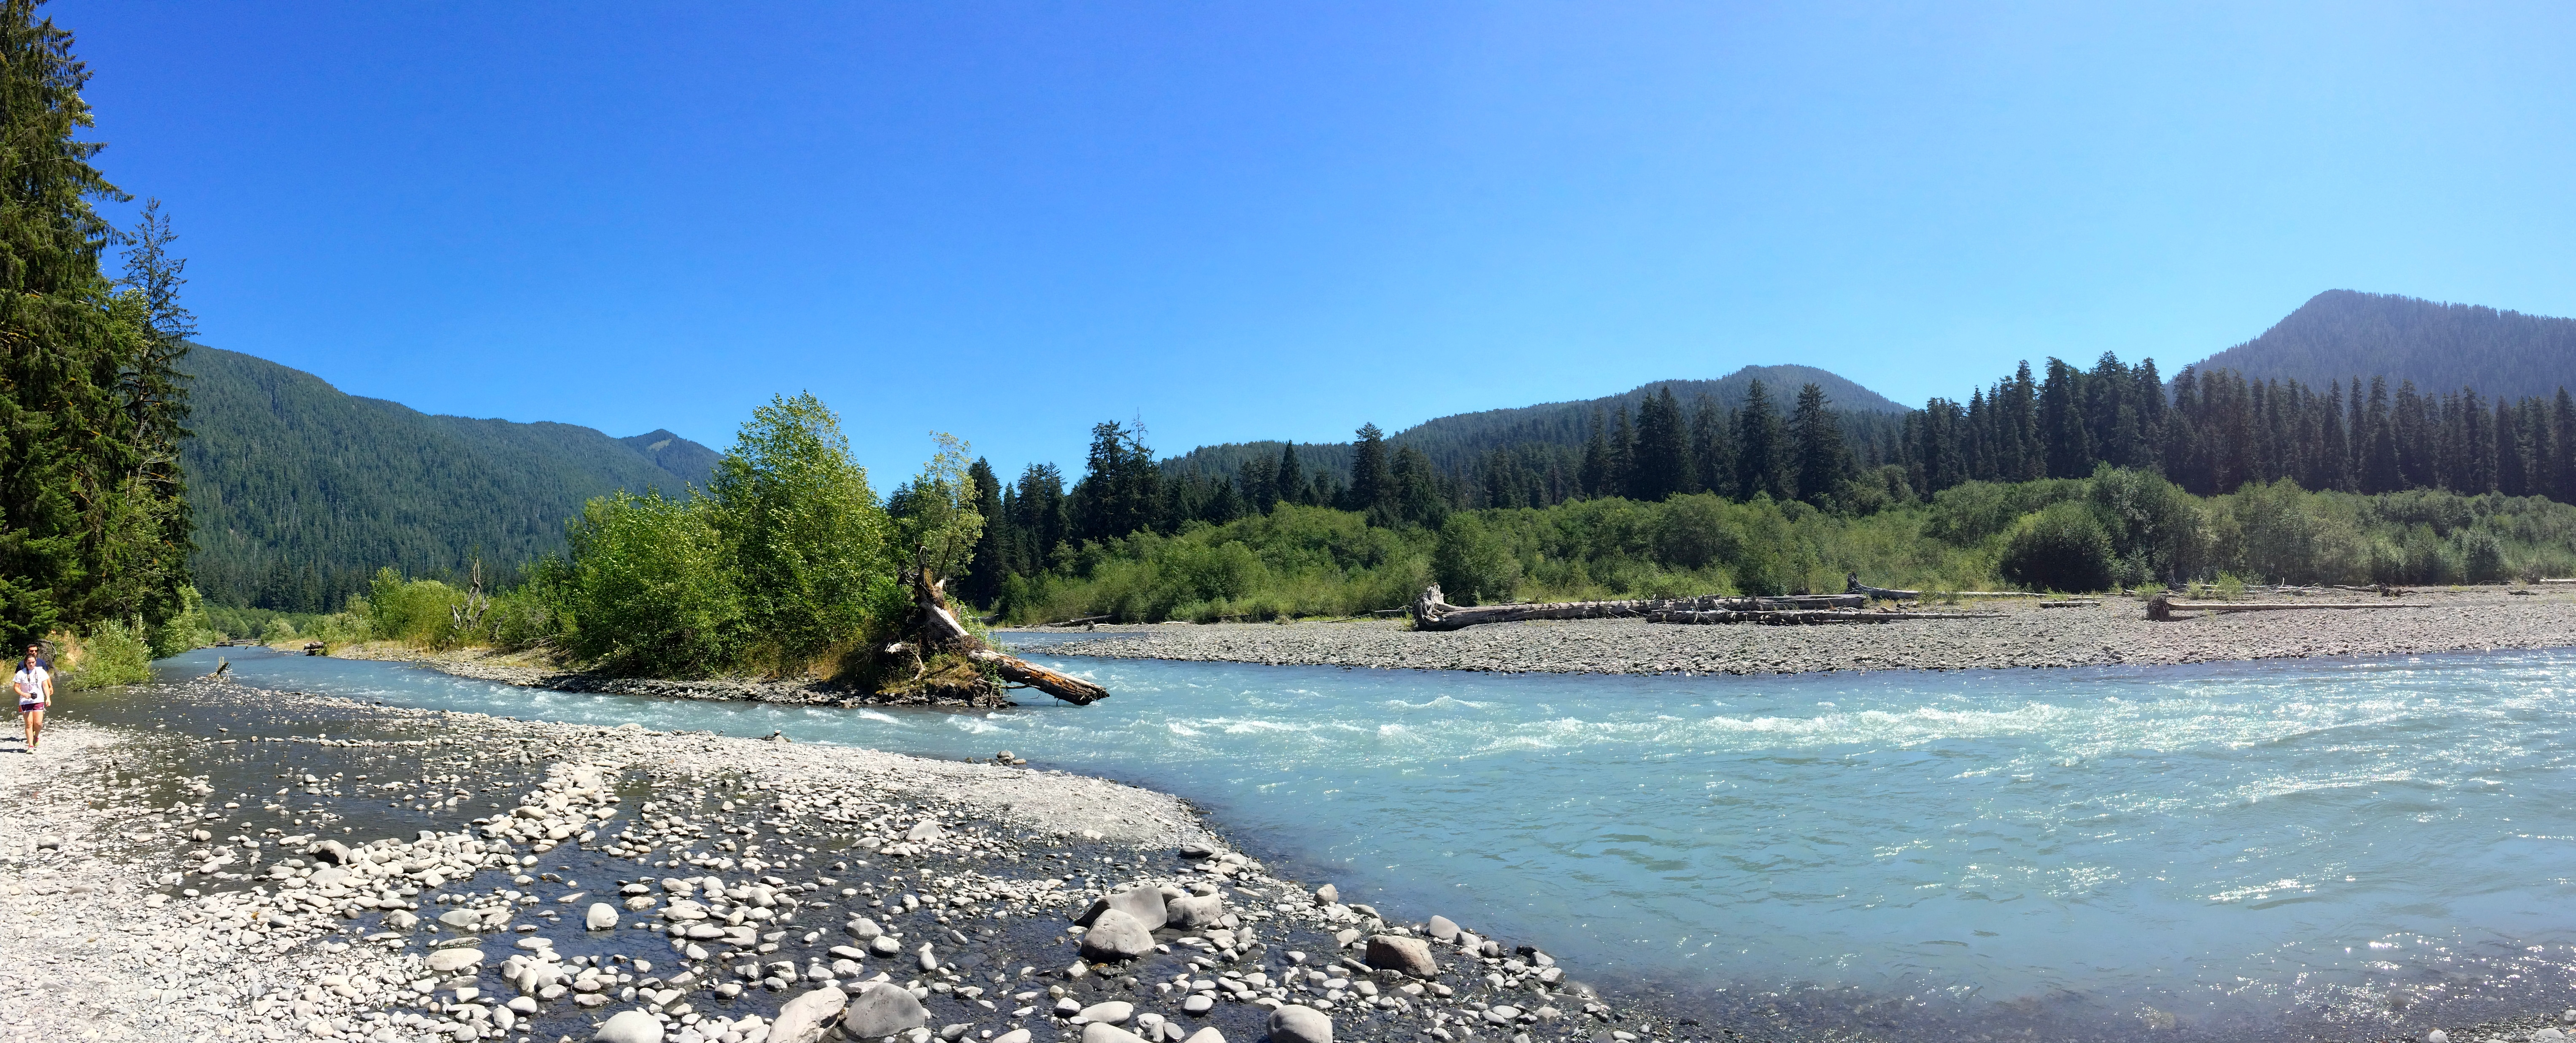 The Hoh River, Olympic National Park